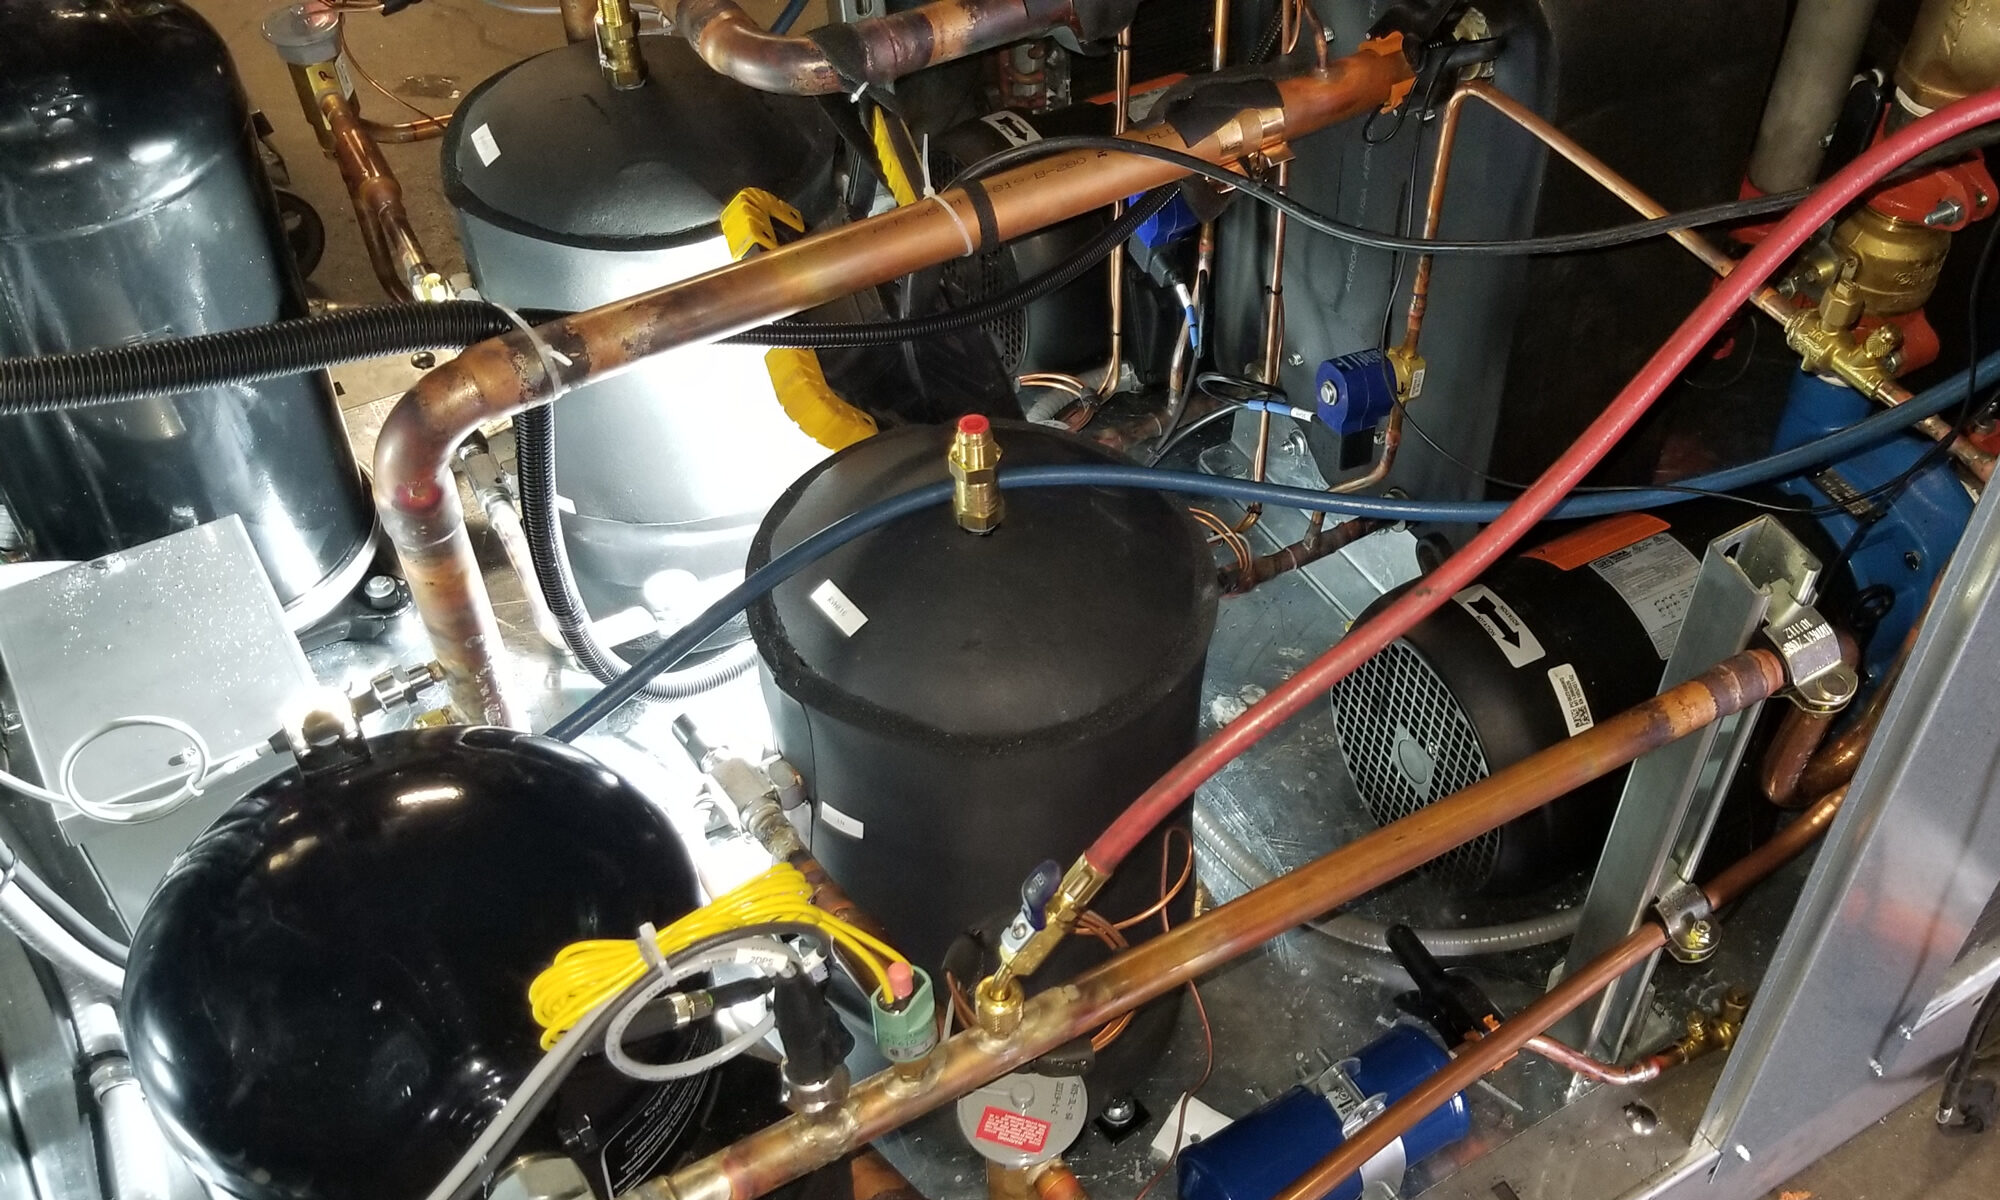 Chiller For Condensing Methane Gas